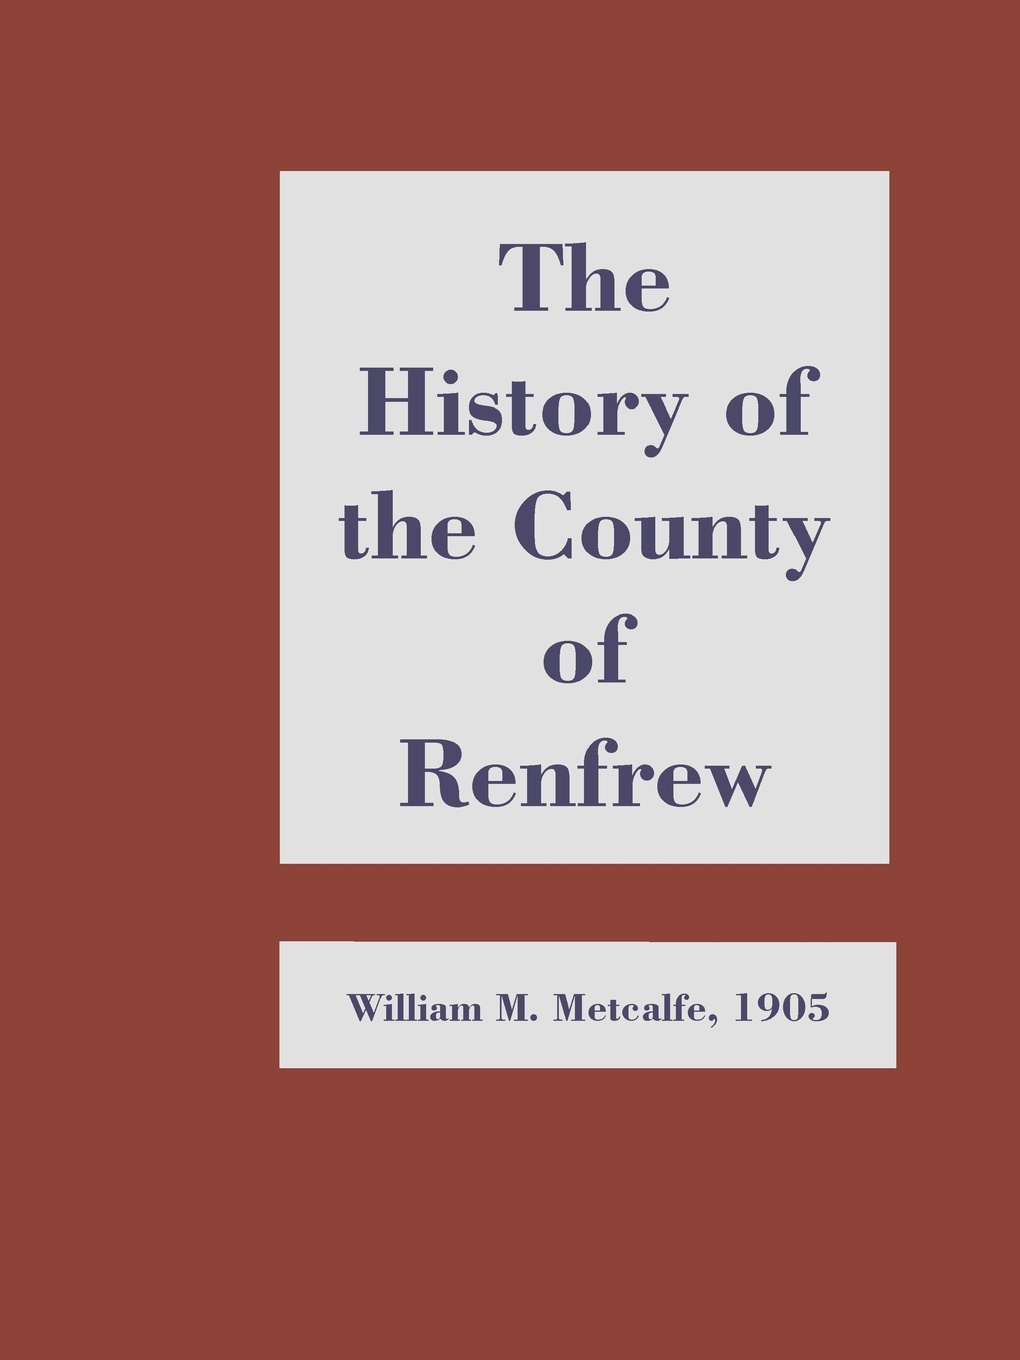 William M. Metcalfe History of the County of Renfrew from the Earliest Times graham stewart the history of the times the murdoch years